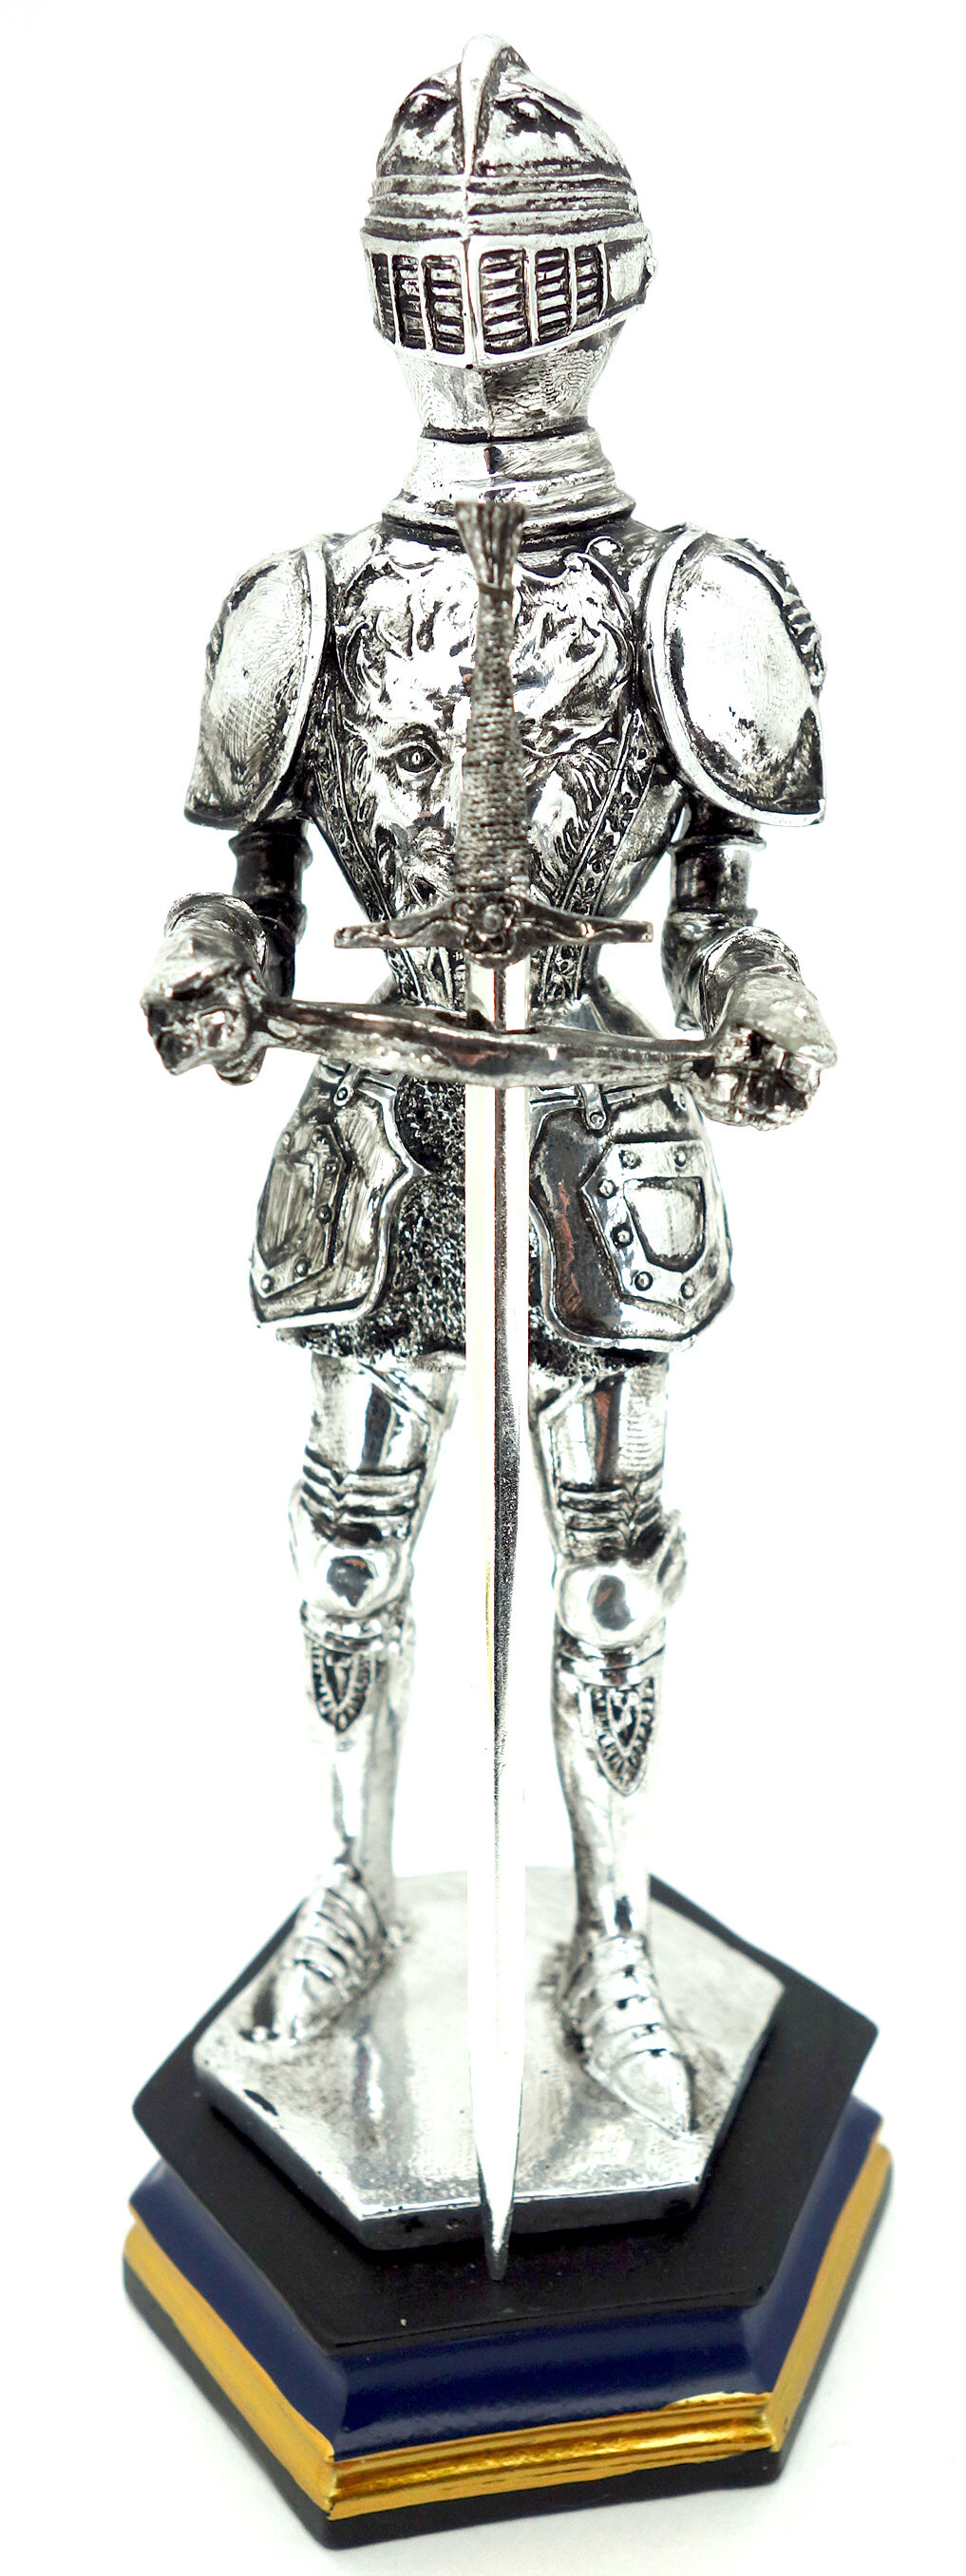 Kmpg Plated Standing Medieval Knight With Sword Figurine Wayfair